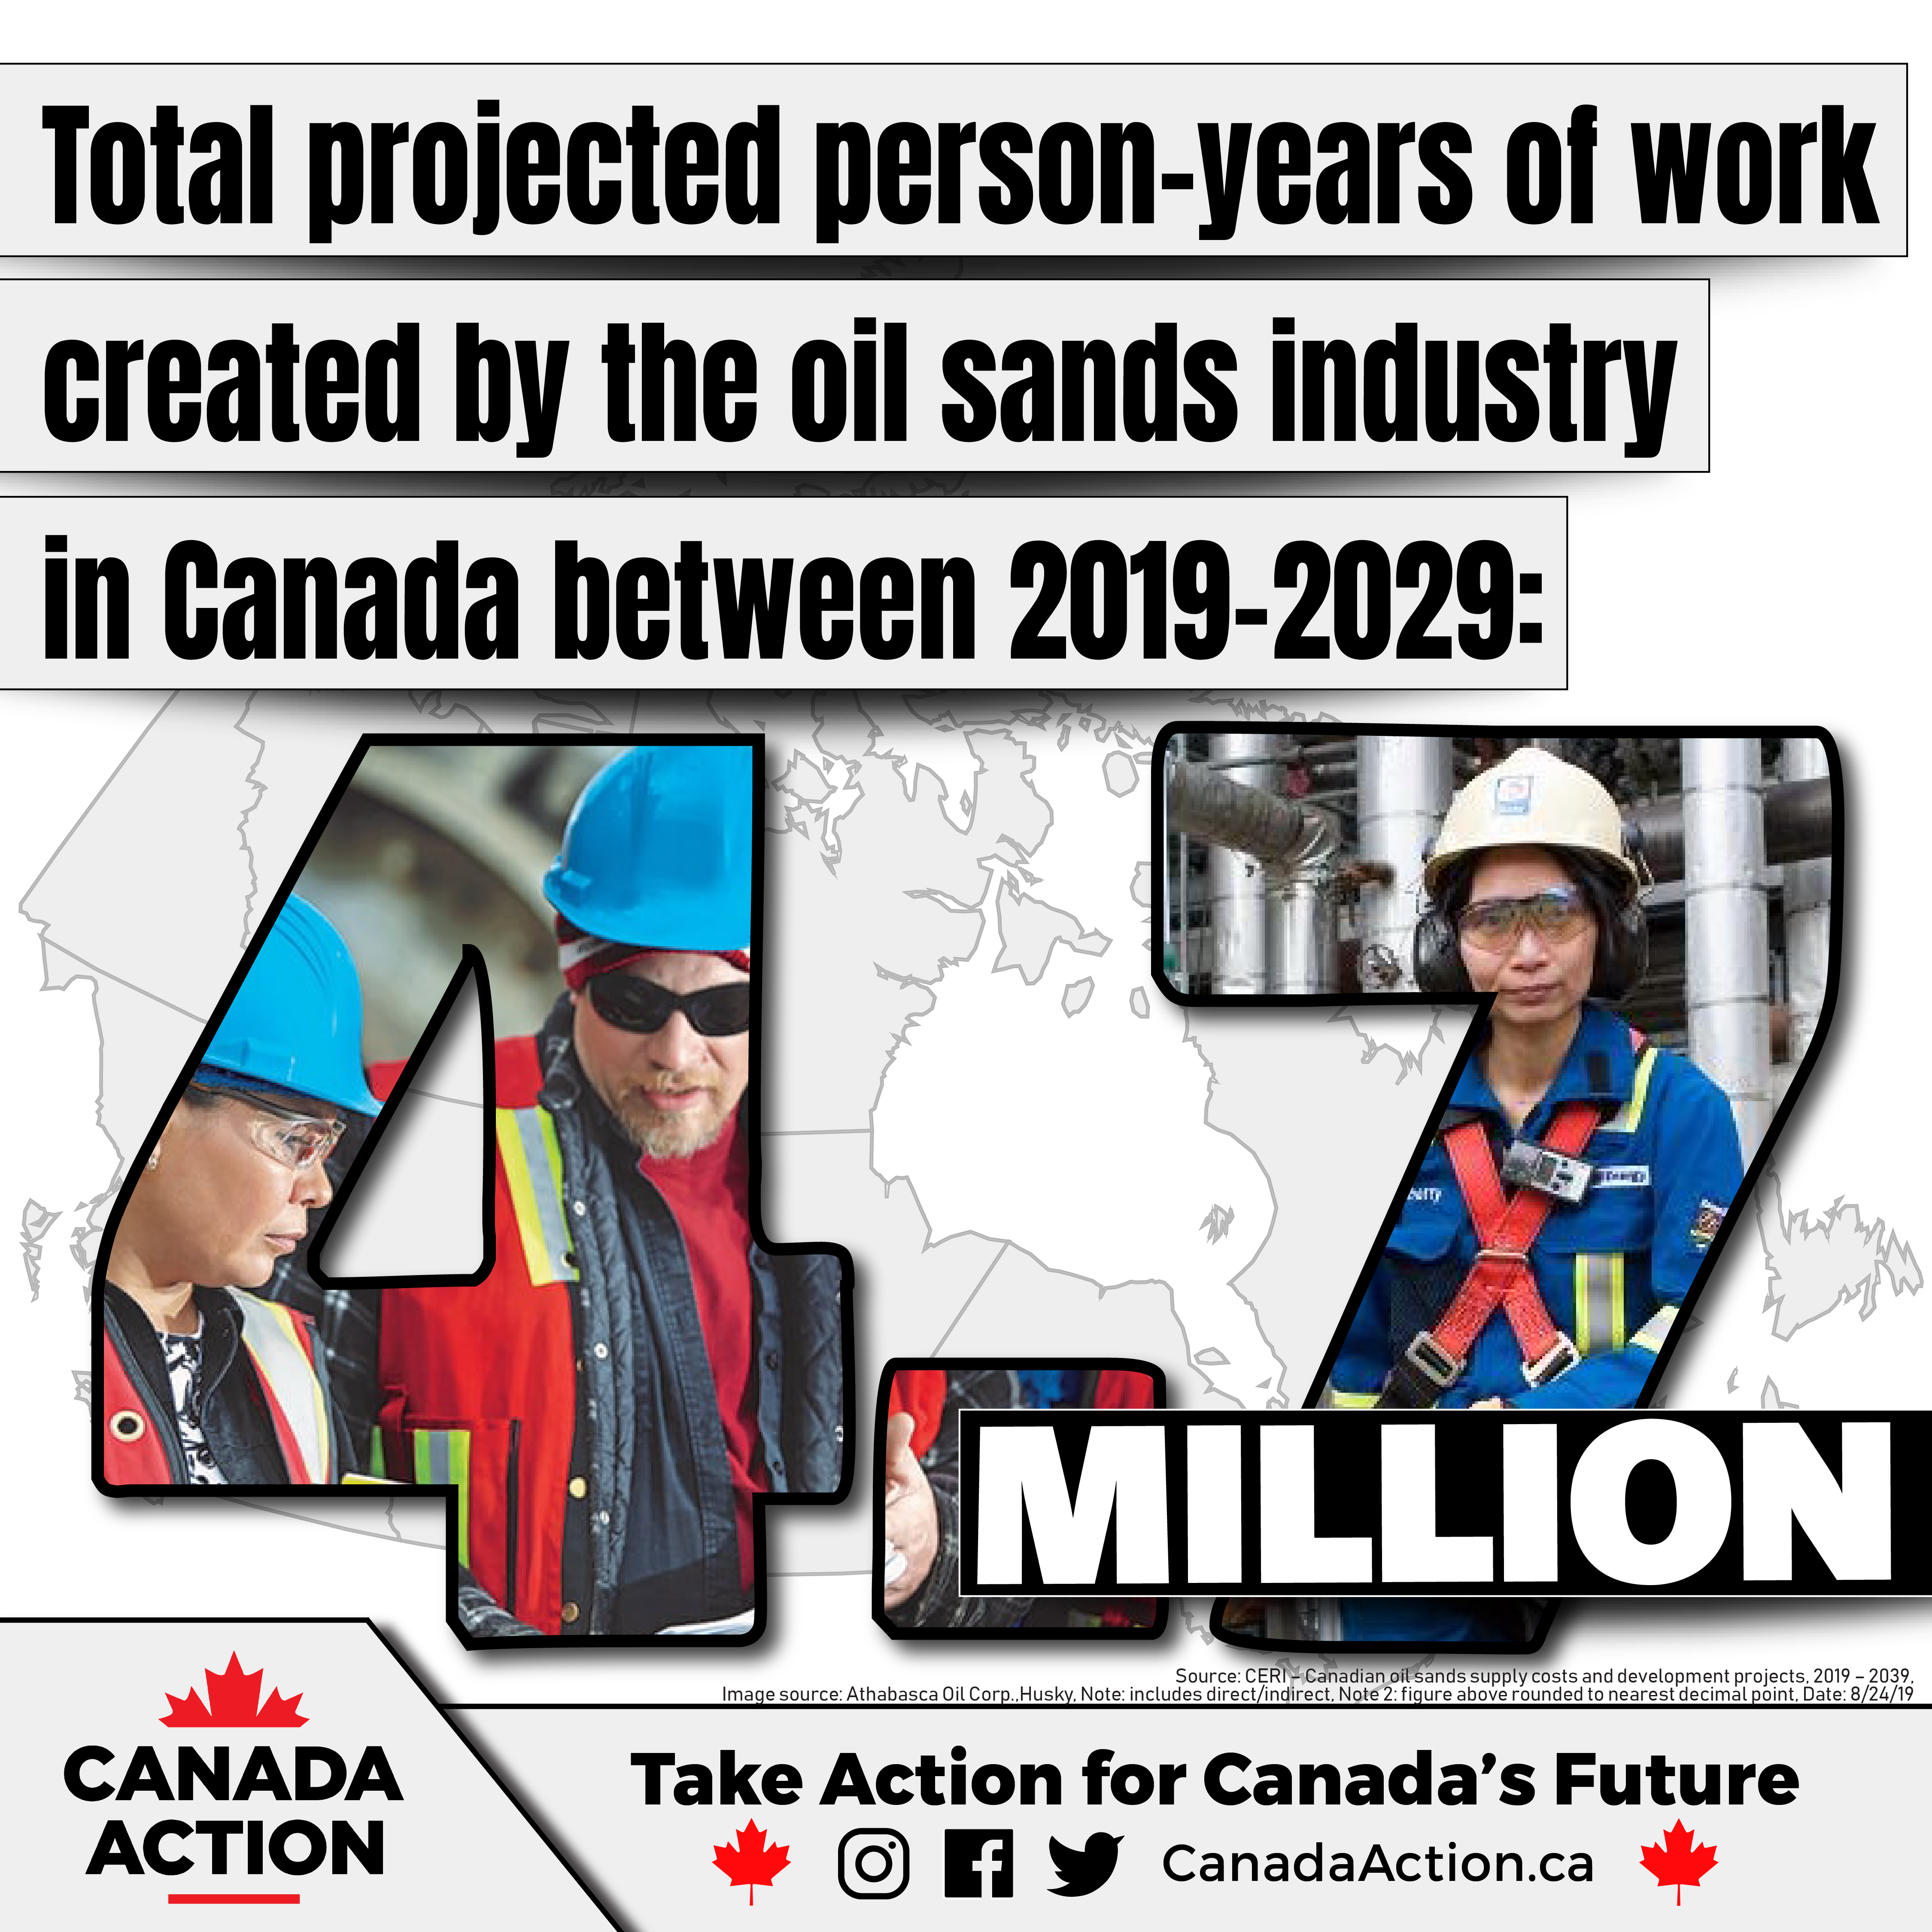 CERI - 4.7 million person-years of employment created by oil sands industry in Canada between 2019-2029